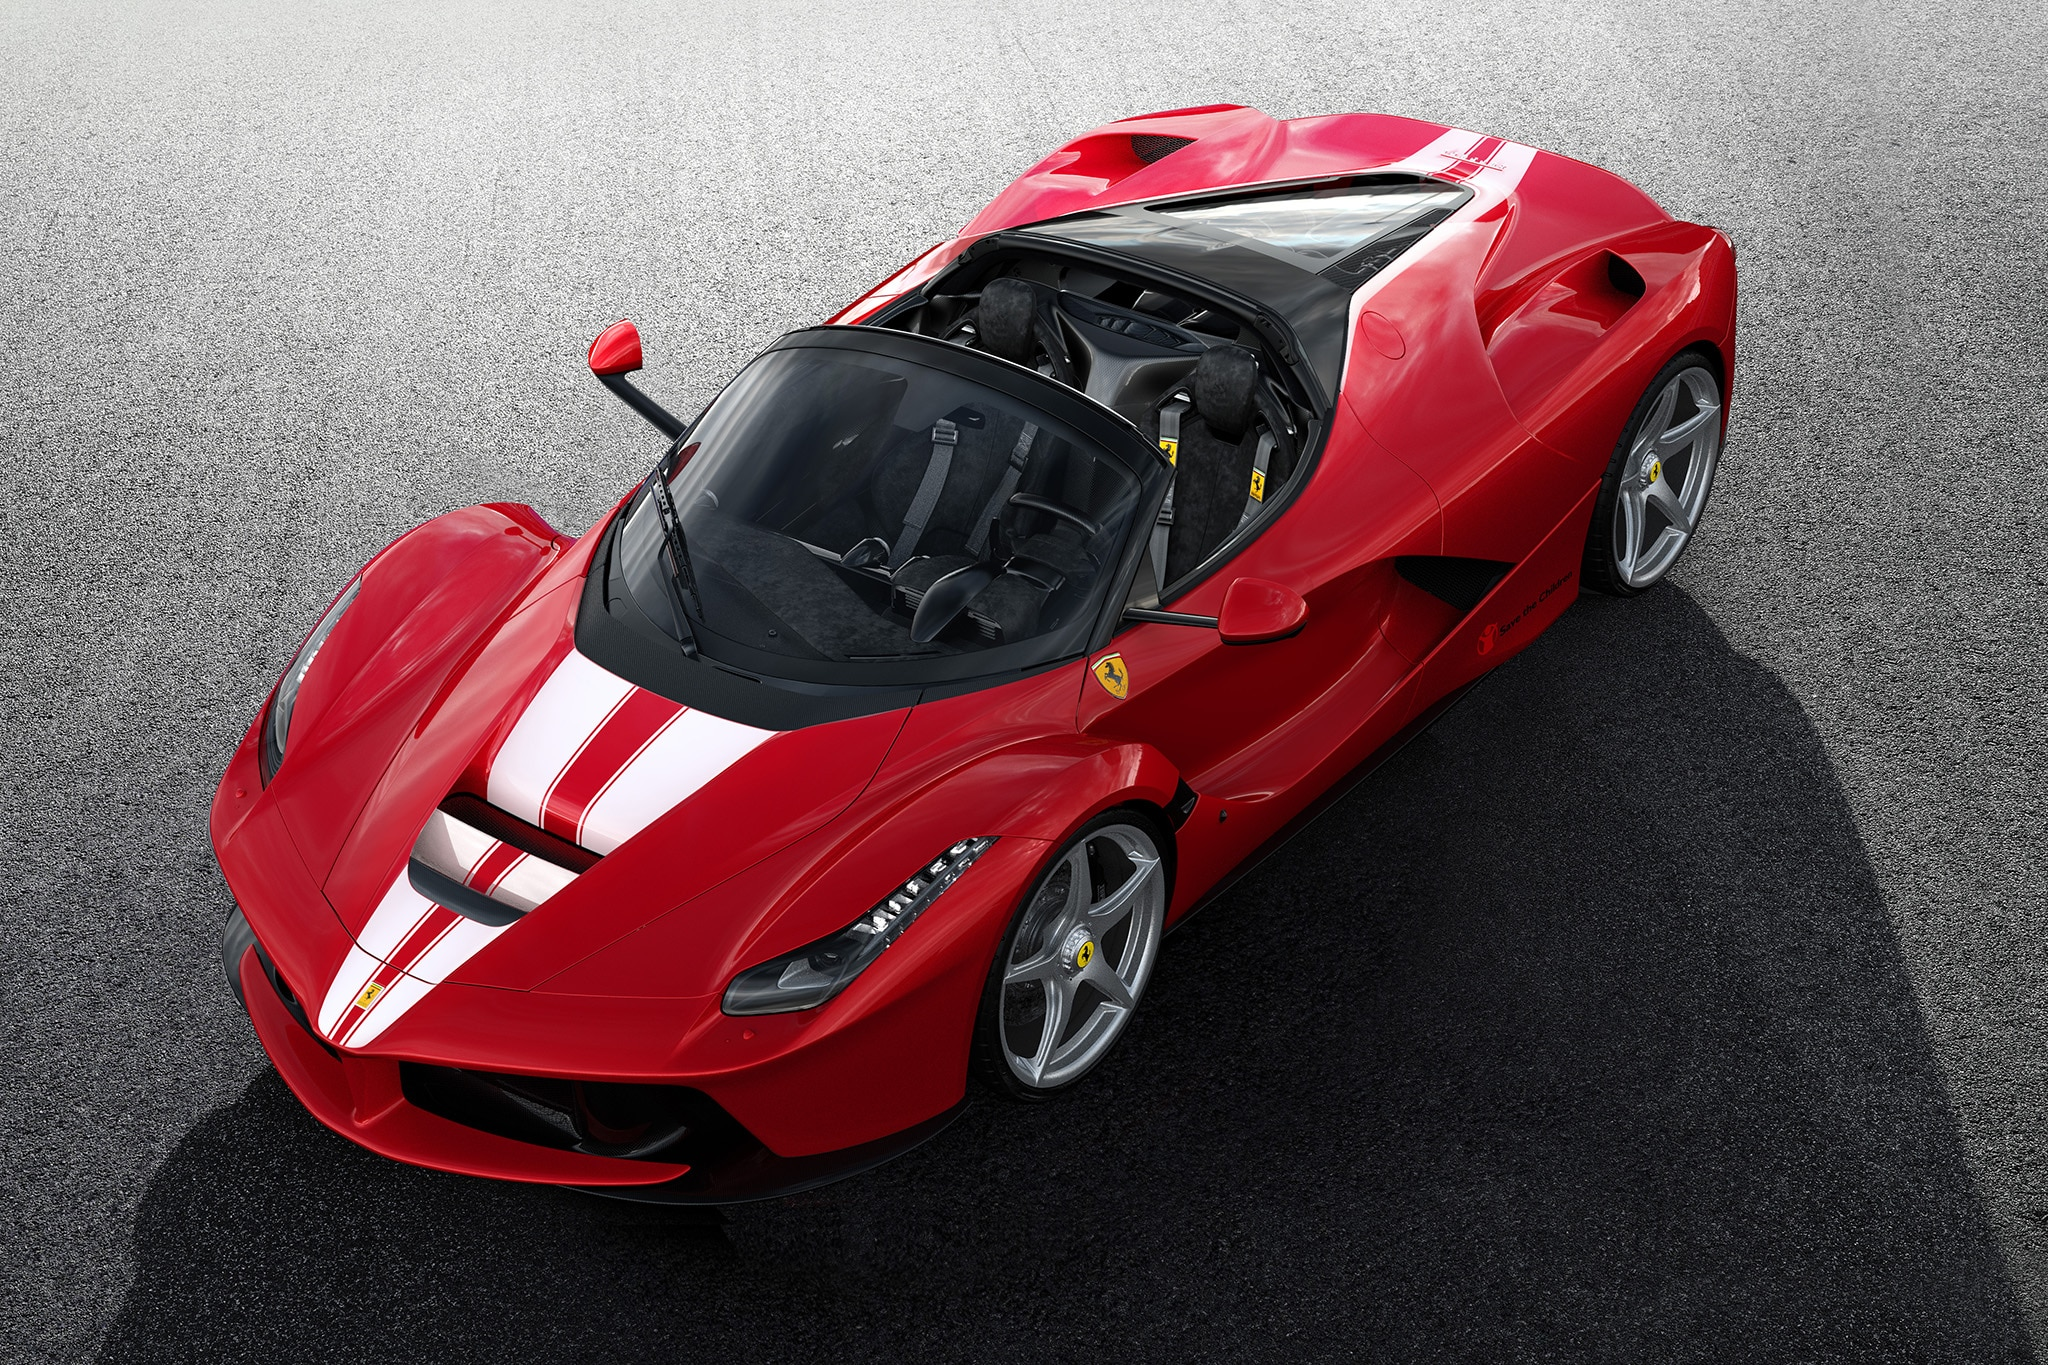 LaFerrari Aperta fetches record $12.4m at auction